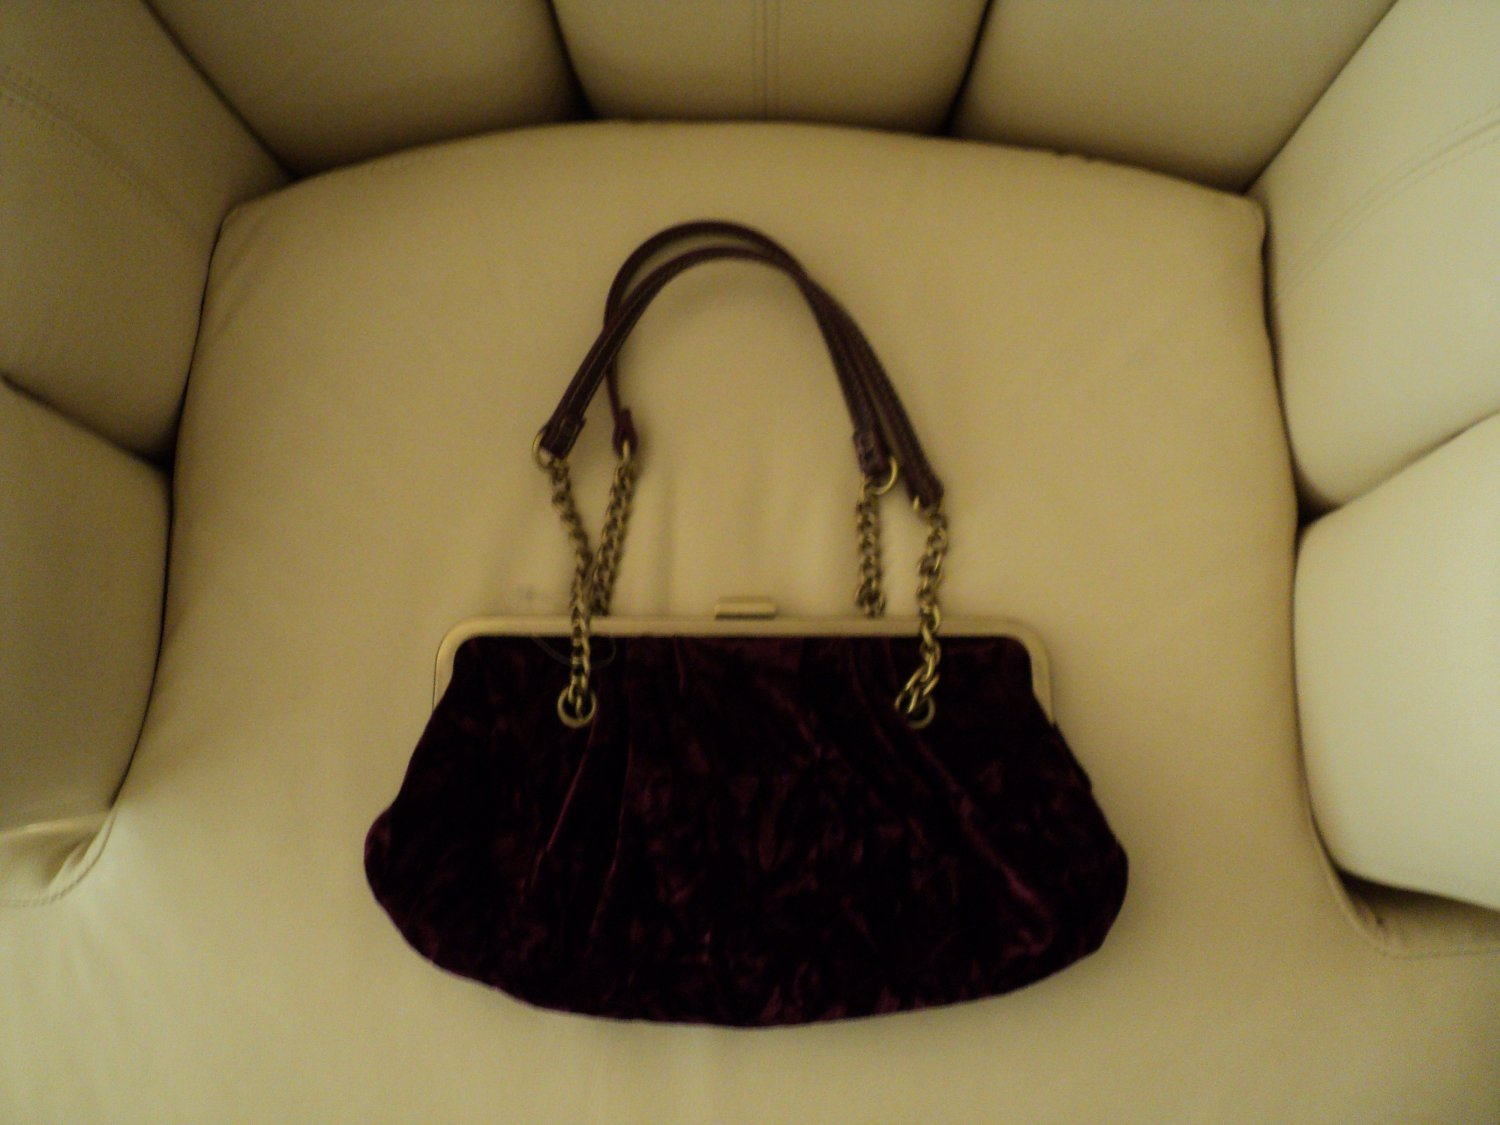 NWOT RED Burgundy VELVET HANDBAG Purse Pocketbook Womens Medium Size Gold Tone Hardware